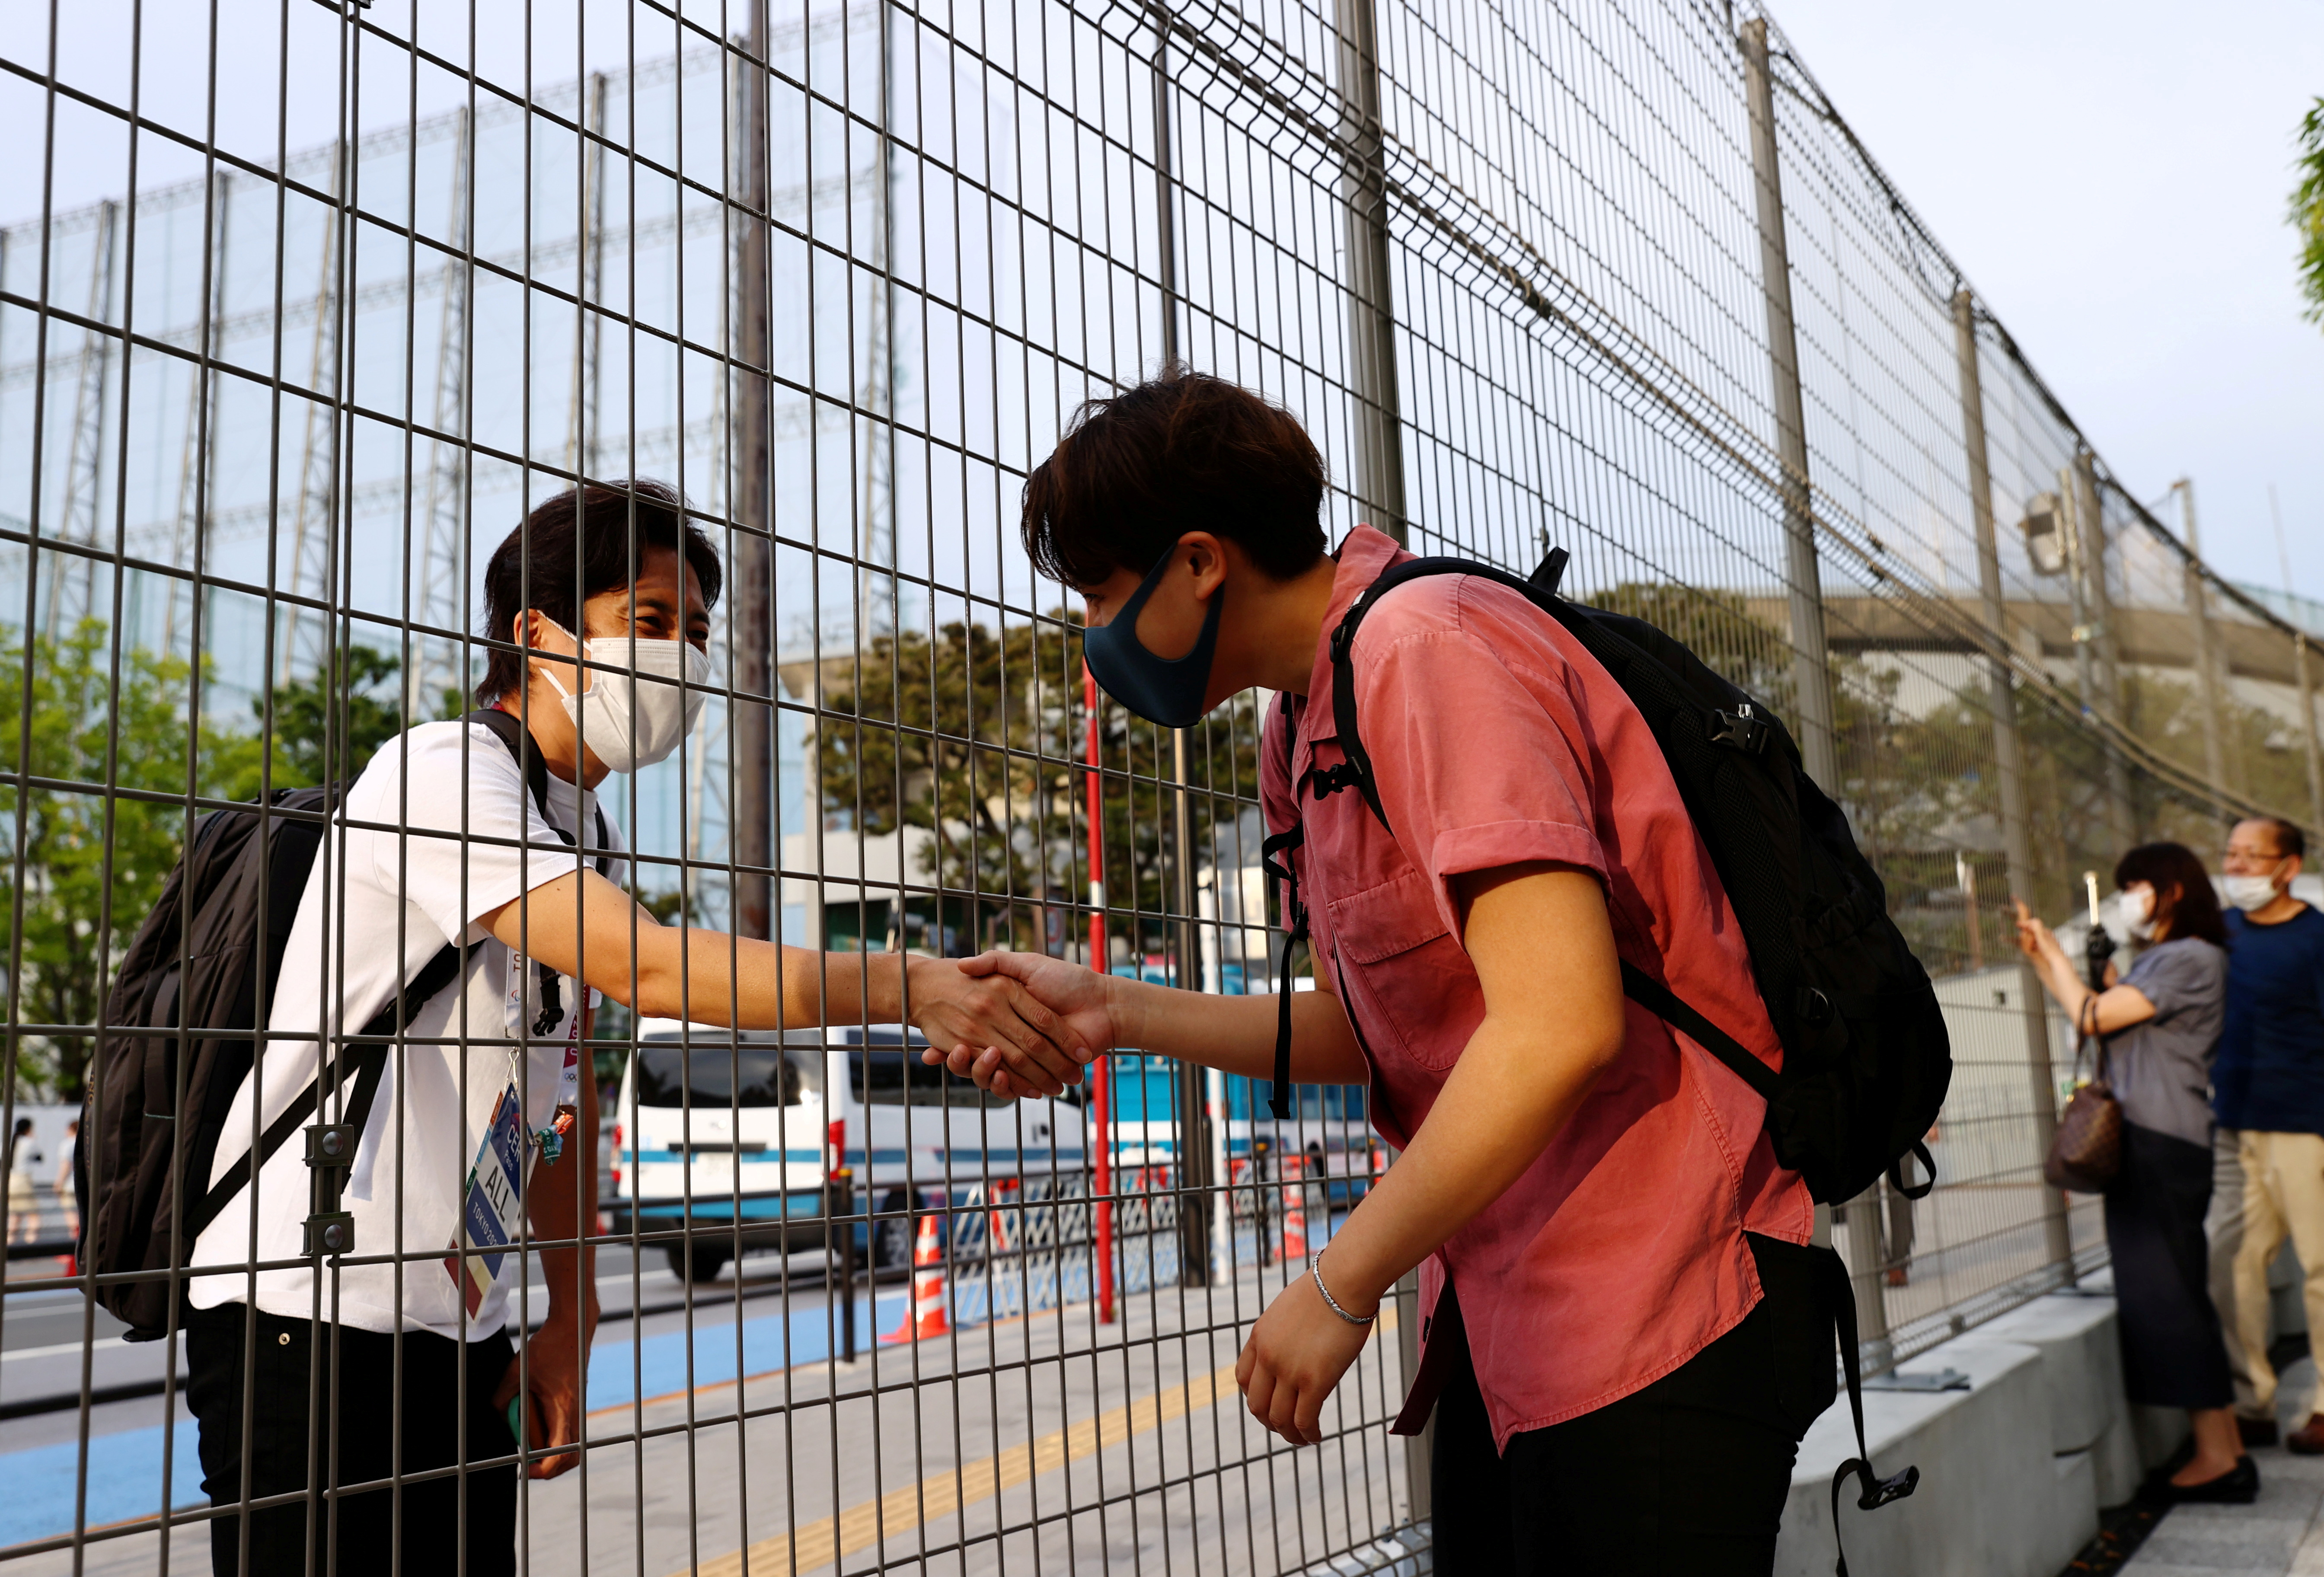 Arisa Tsubata, a nurse and a boxer, shakes hands with a staff member of the opening and closing ceremony of the Tokyo 2020 Olympic Games through a fence outside the National Stadium, the main venue of the Tokyo 2020 Olympic Games in Tokyo, Japan, July 26, 2021. Picture taken on July 26, 2021.   REUTERS/Kim Kyung-Hoon/File Photo